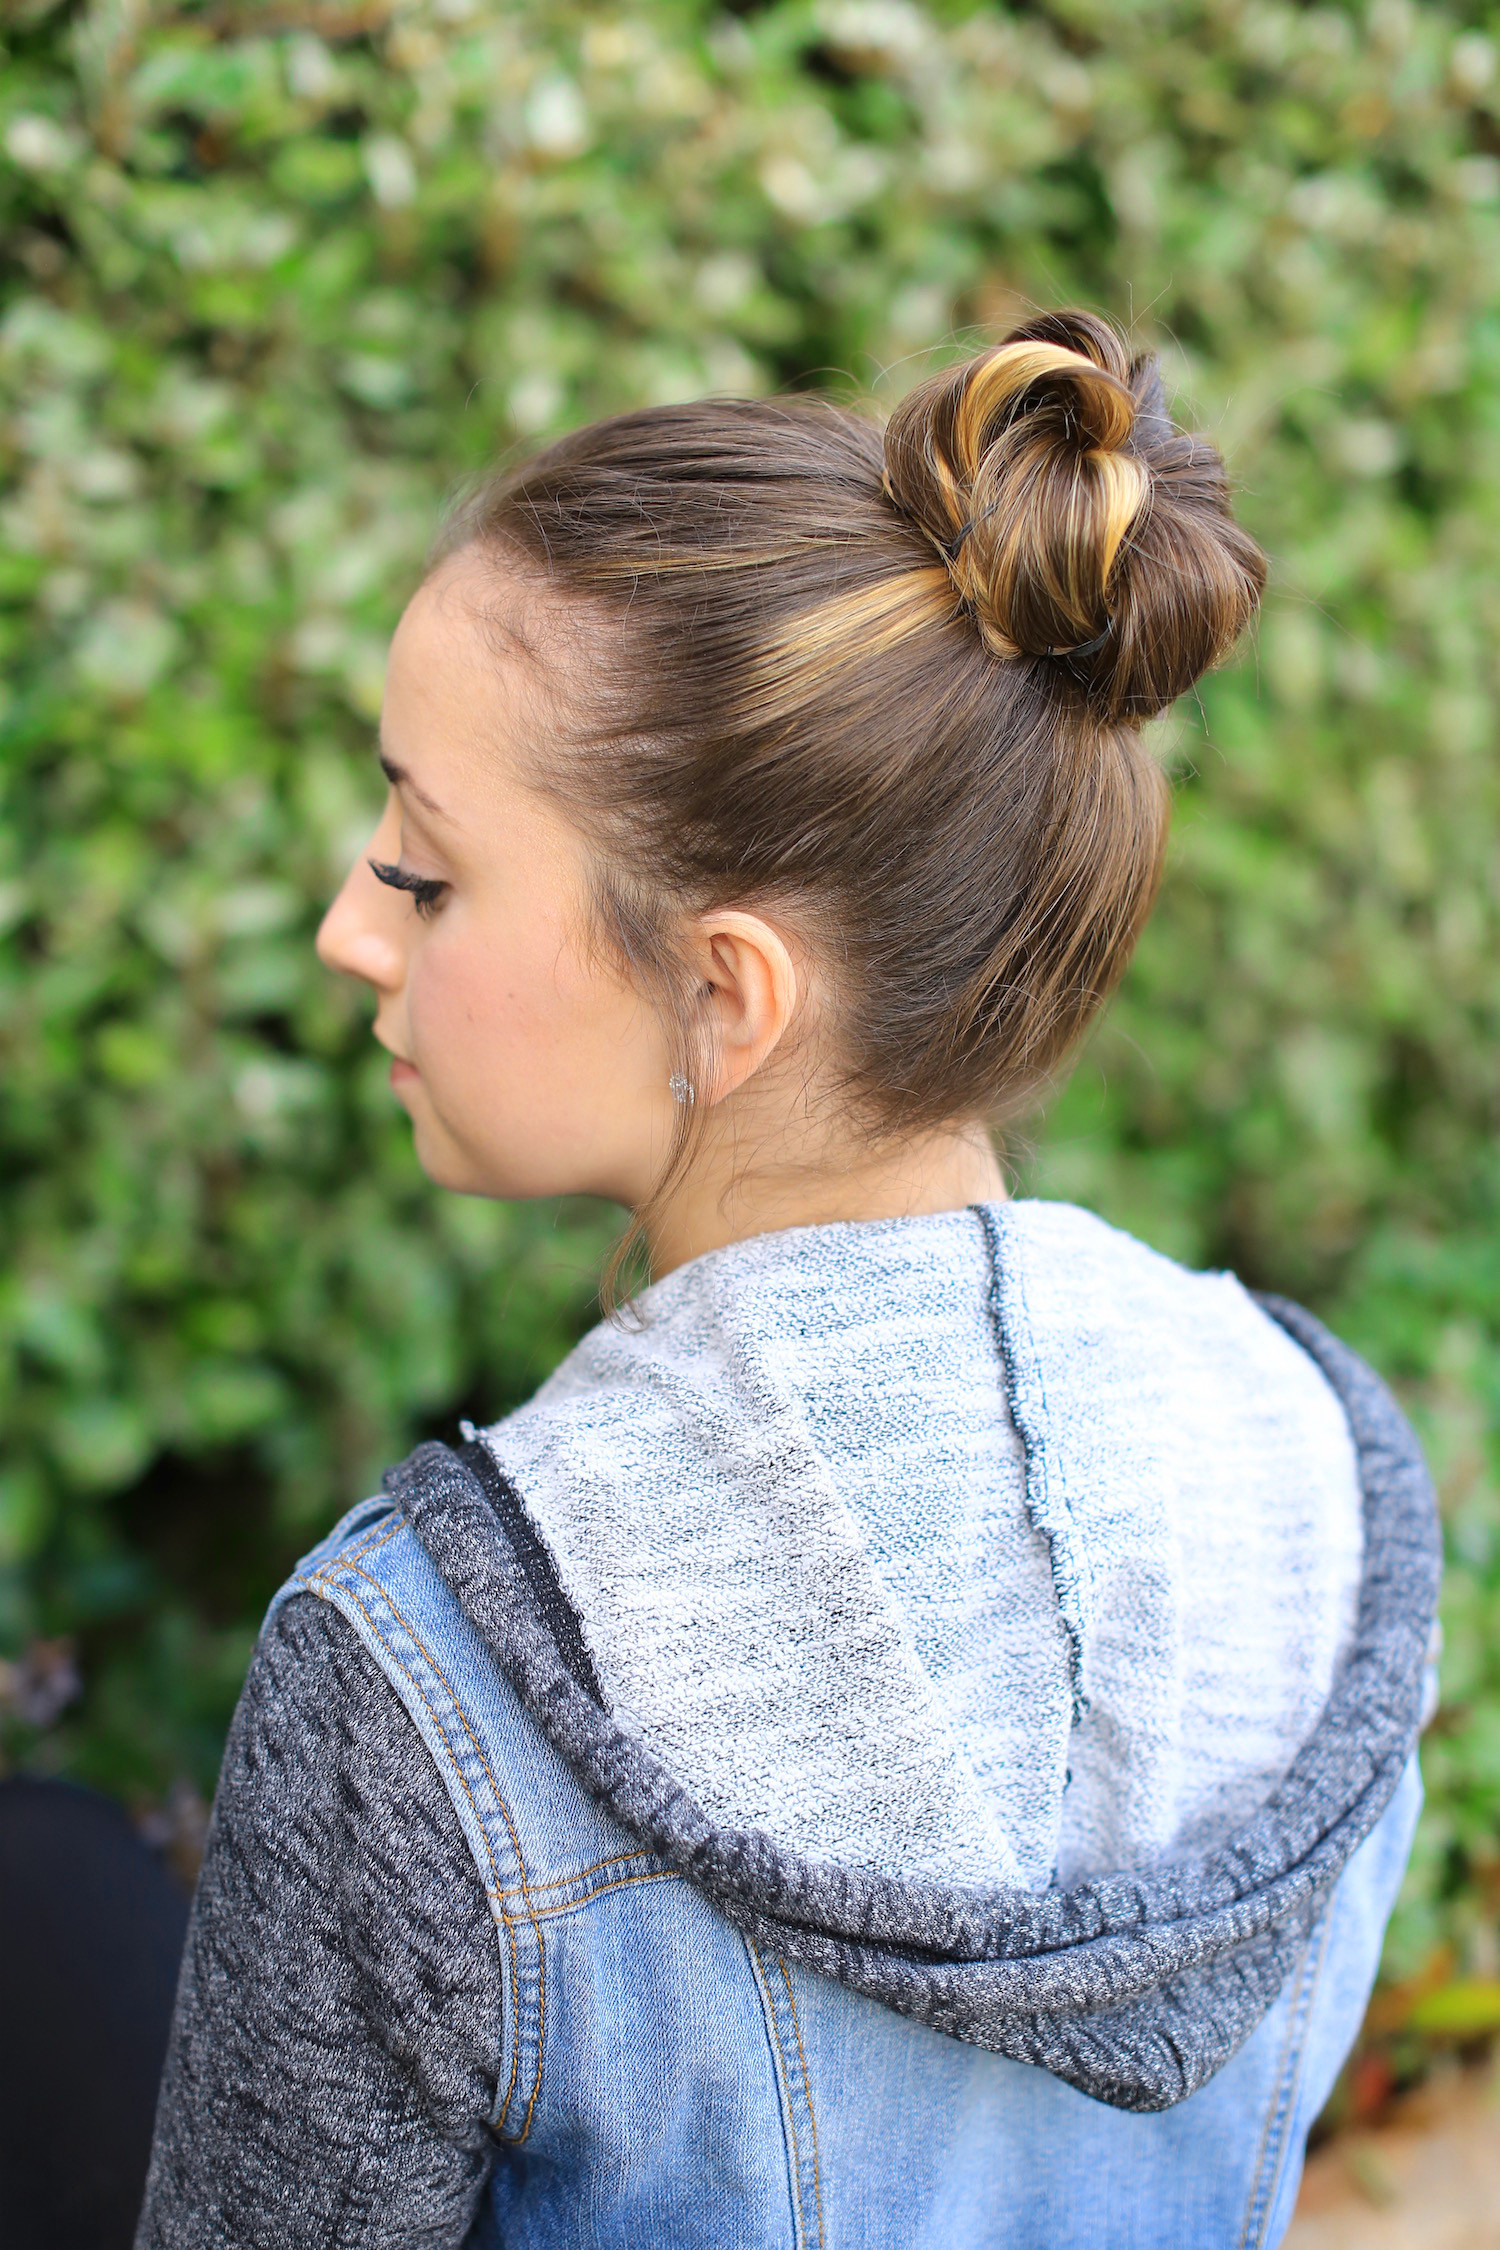 Best ideas about Cute Hairstyles For Women . Save or Pin How to Create a Crown Bun Now.